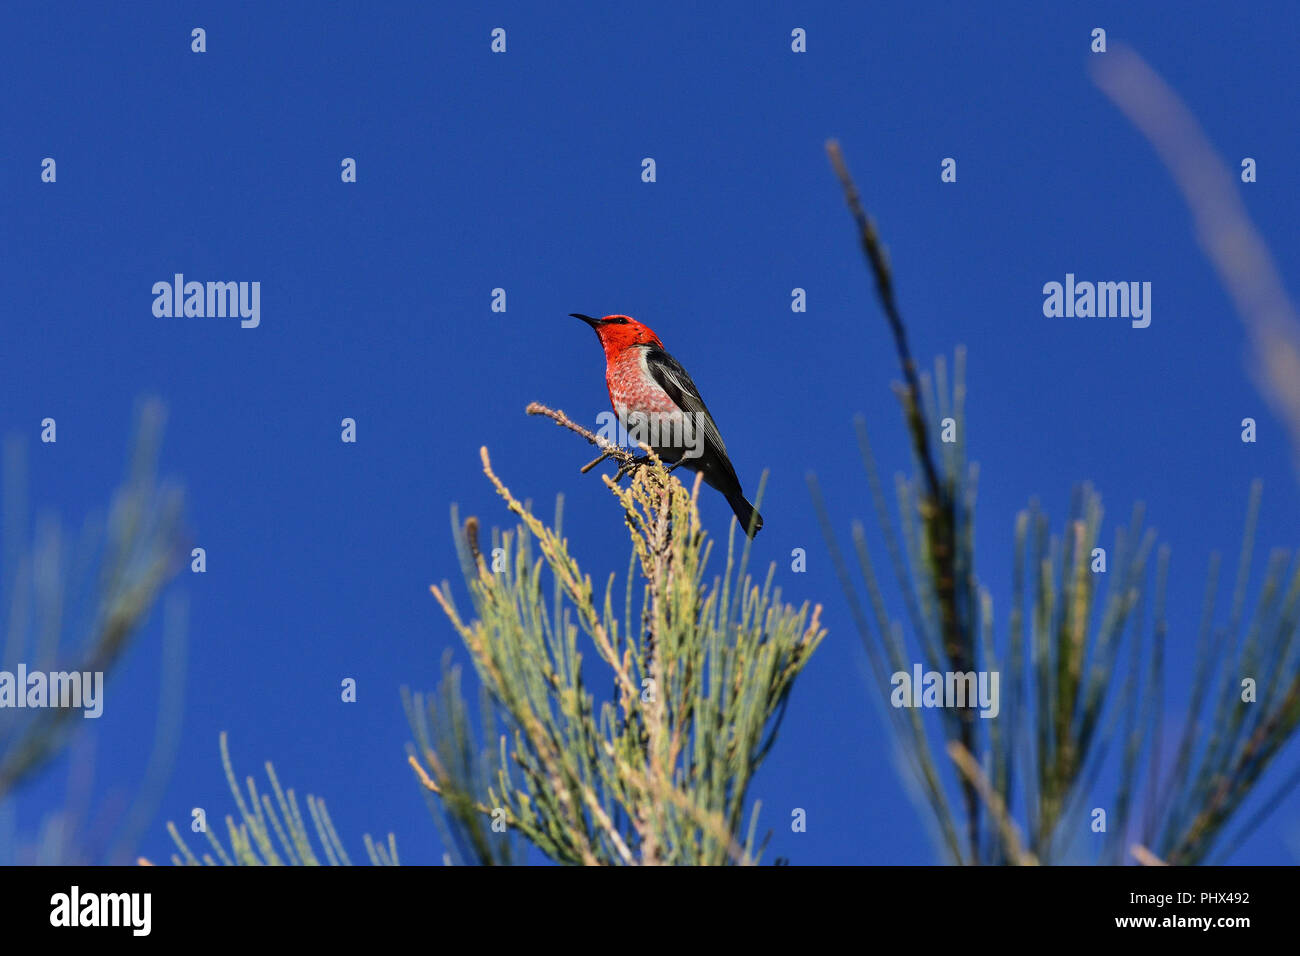 An Australian, Queensland Male Scarlet Honeyeater ( Myzomela sanguinolenta ) perched on a tree branch resting - Stock Image